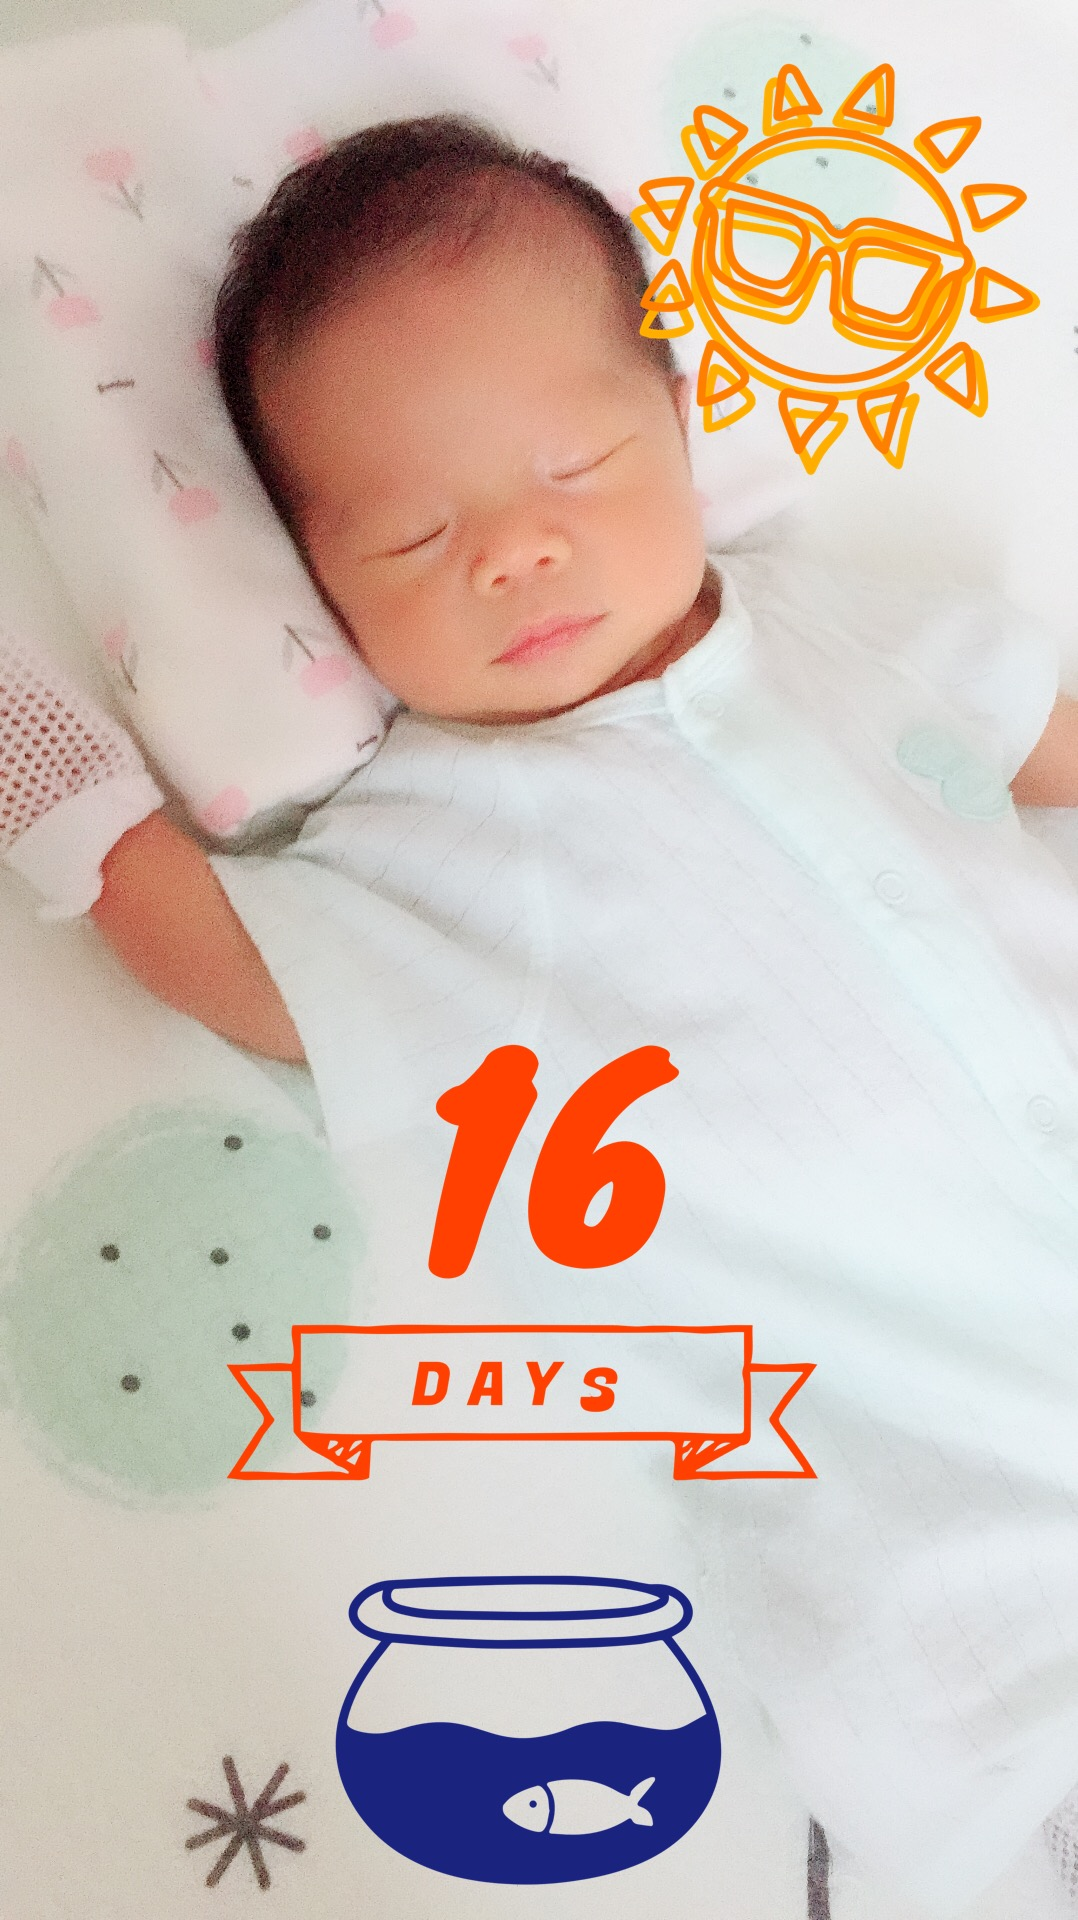 16 days old!